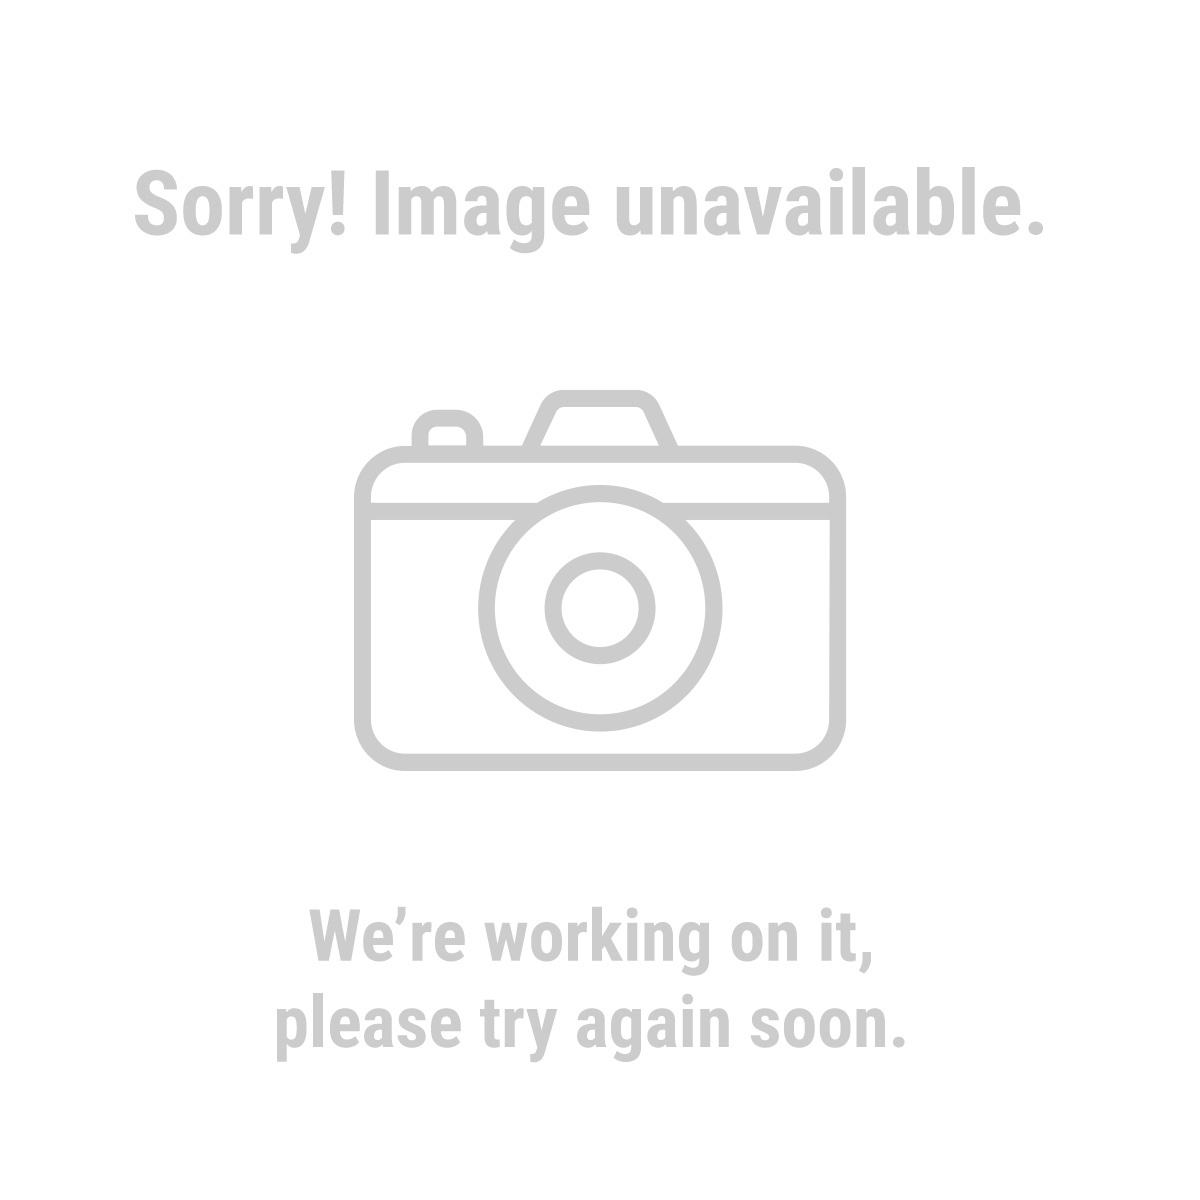 Pittsburgh Automotive 62584 3 ton Steel Heavy Duty Floor Jack with Rapid Pump